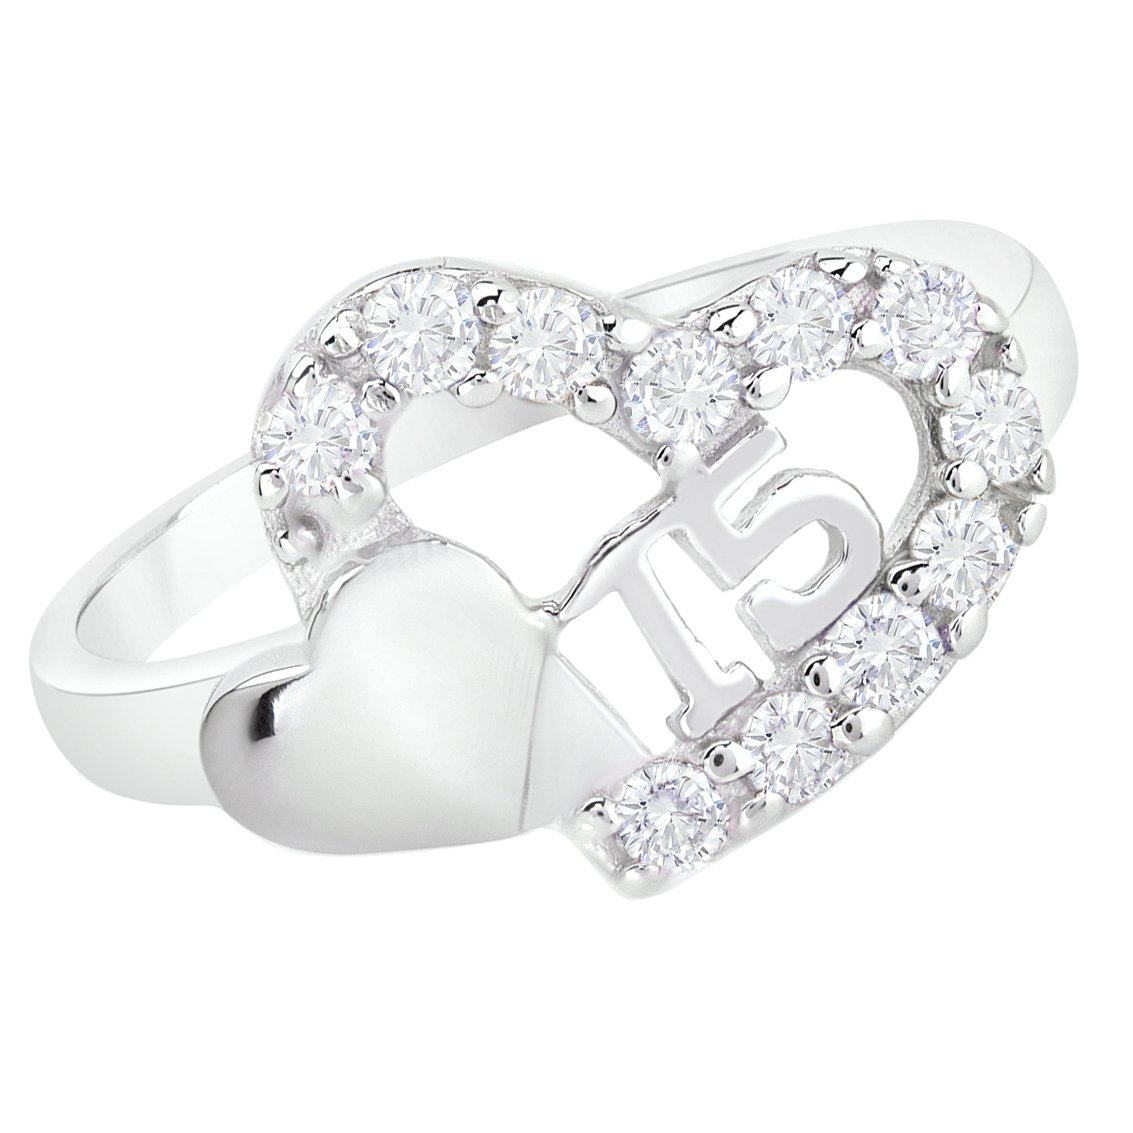 Sweet 15 Quinceanera Cz Double Heart Ring 925 Sterling Silver Rhodium Plated (7)